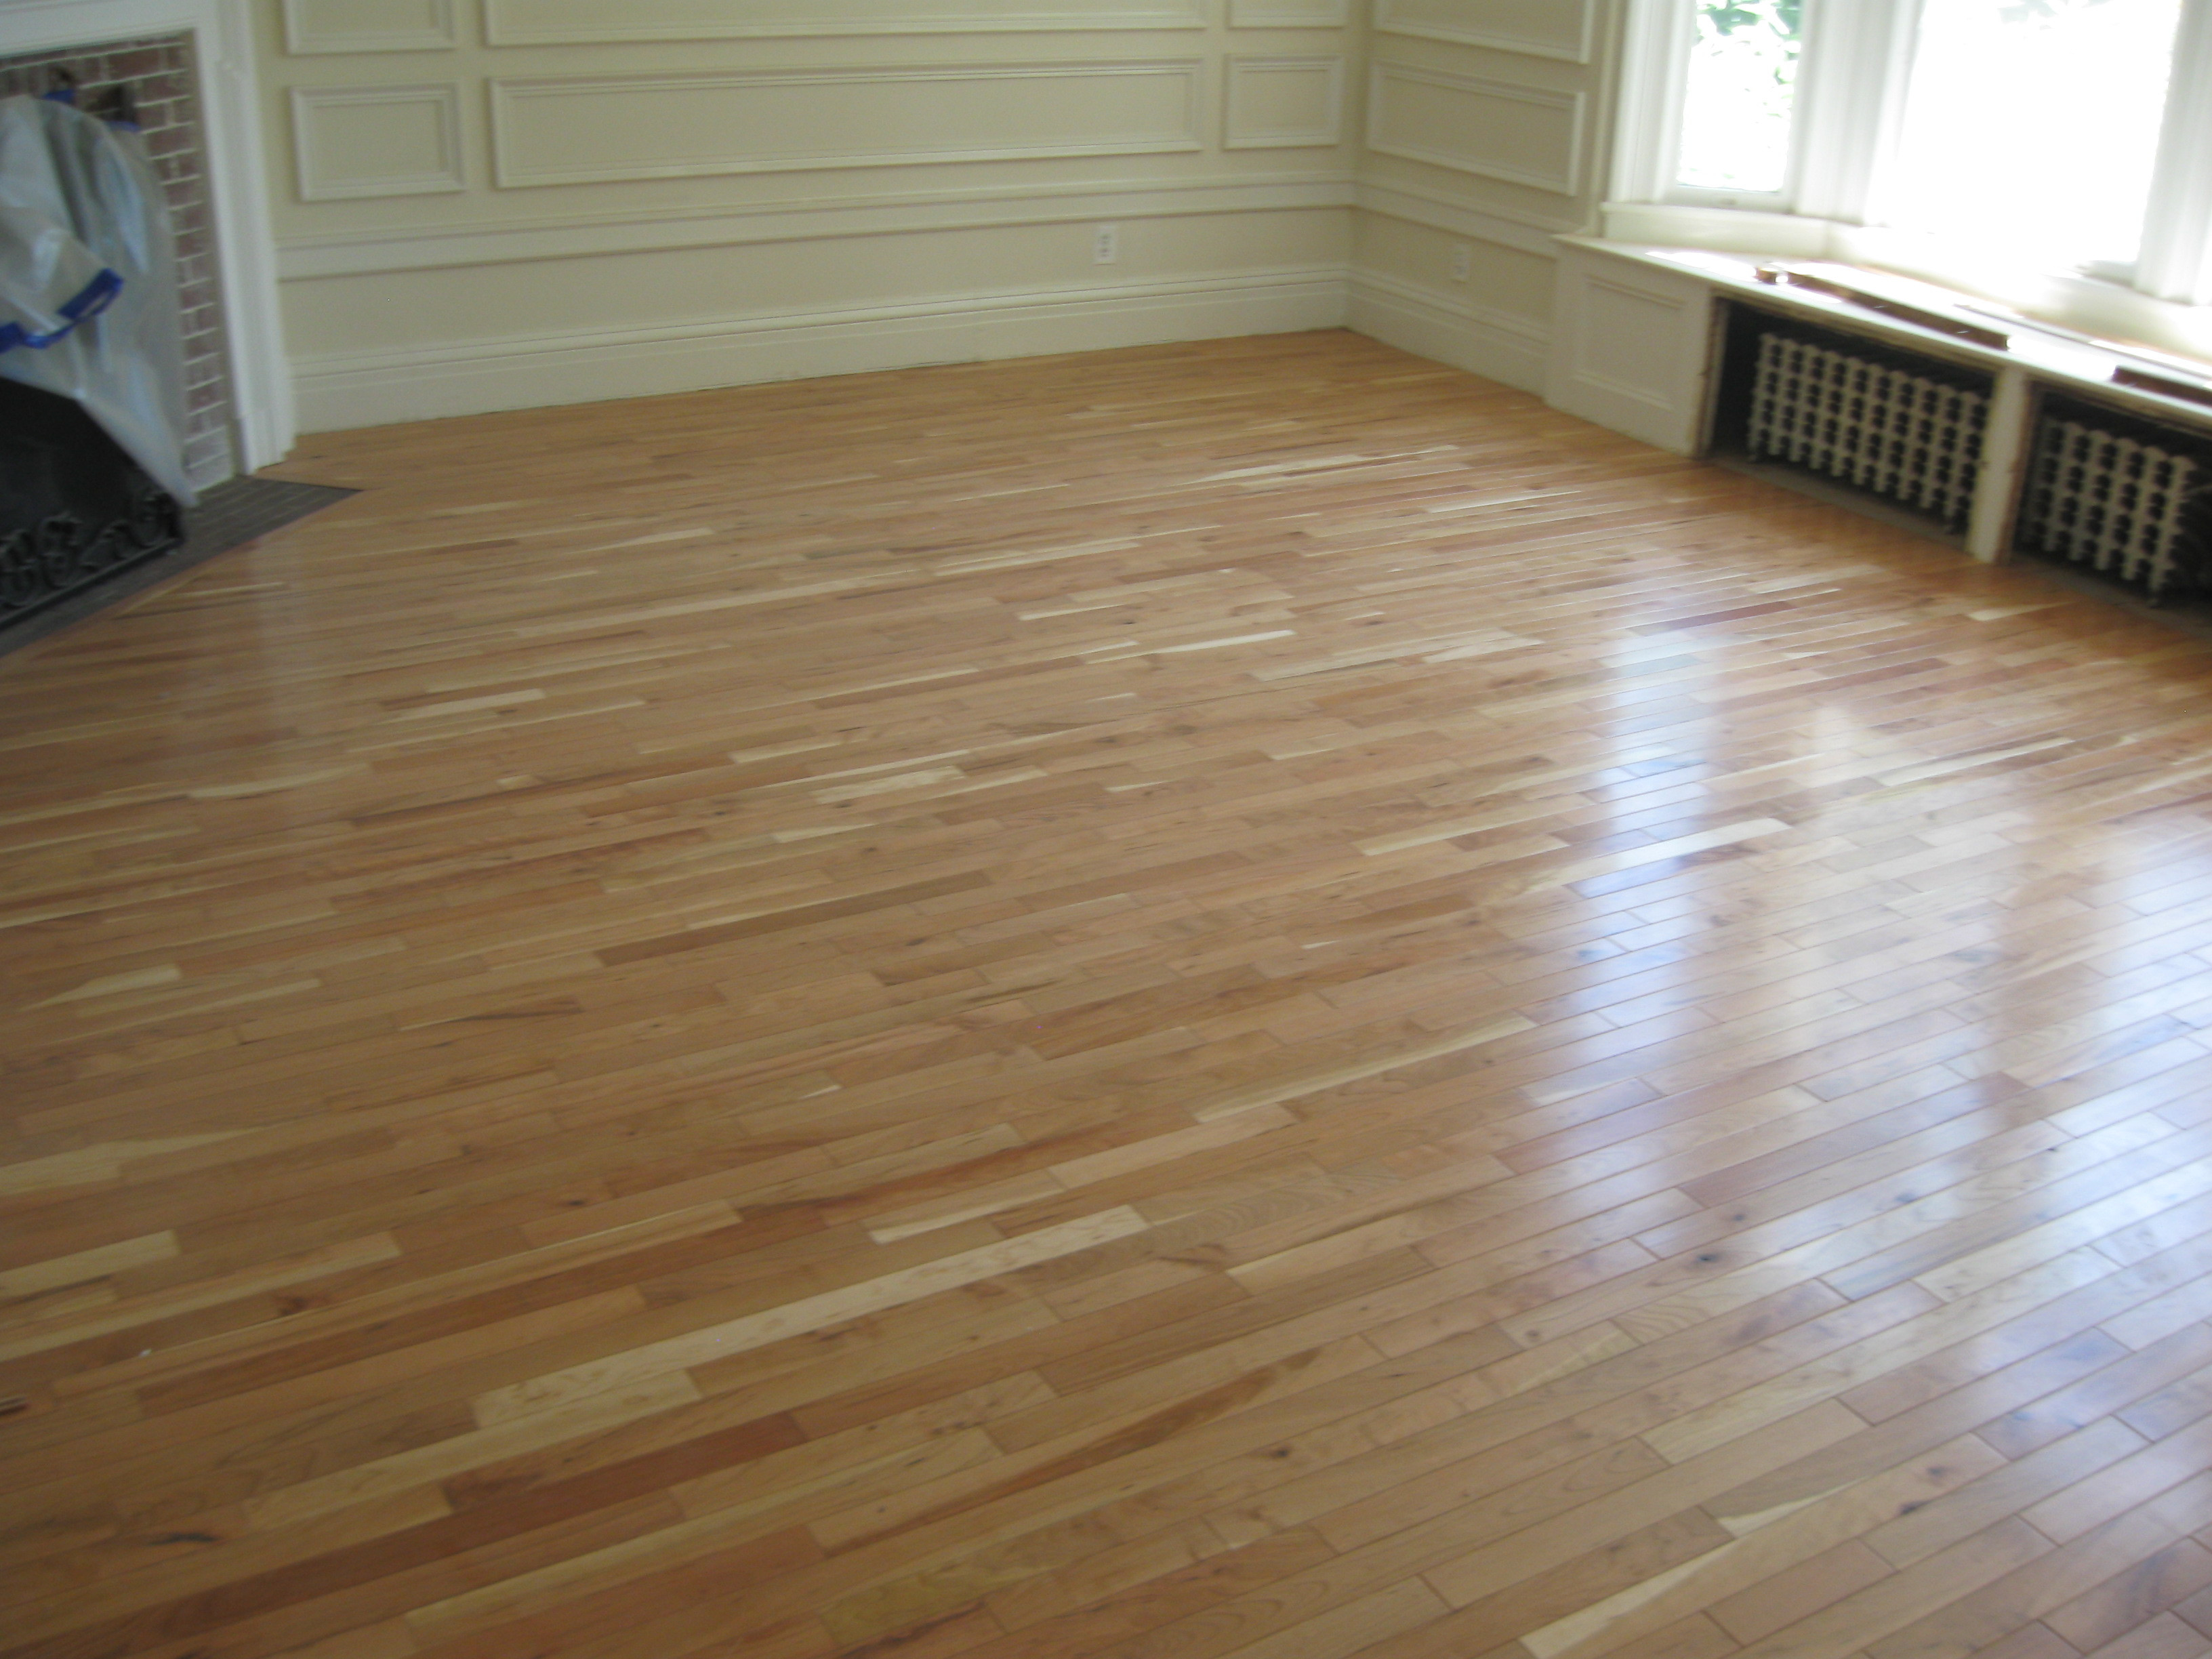 Hardwood Floor Cleaning Kansas City Of Wood Floor Refinishing Service Adventures In Staining My Red Oak Intended for Wood Floor Refinishing Service Rochester Hardwood Floors Of Utica Home